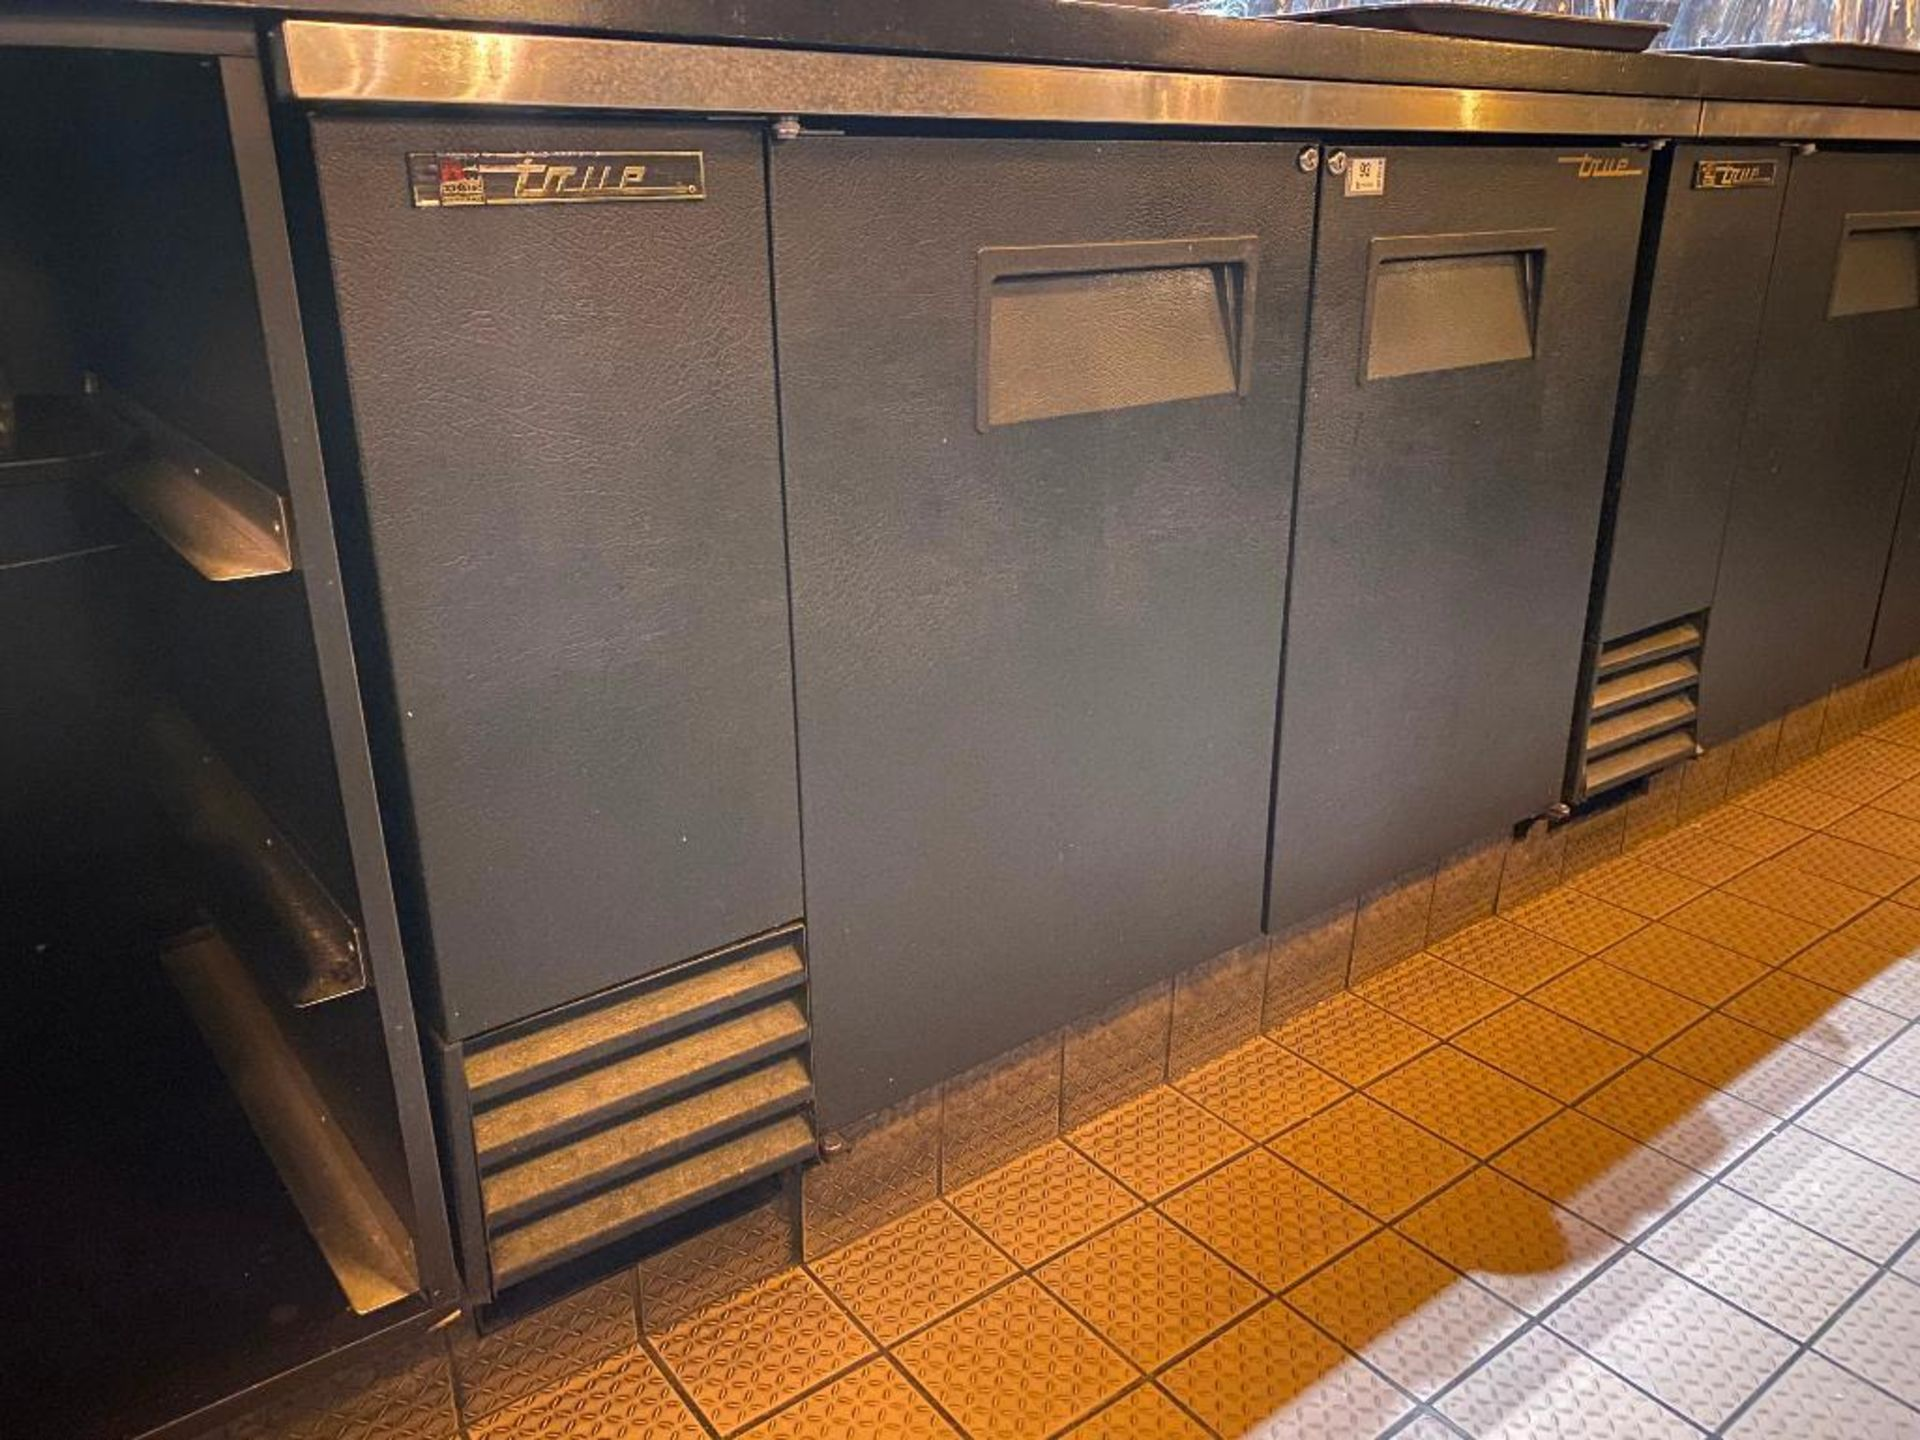 "TRUE TBB-2 59"" 2 DOOR SOLID BACK BAR REFRIGERATOR - NOTE: REQUIRES REMOVAL FROM UNDER BAR, PLEASE IN - Image 2 of 4"